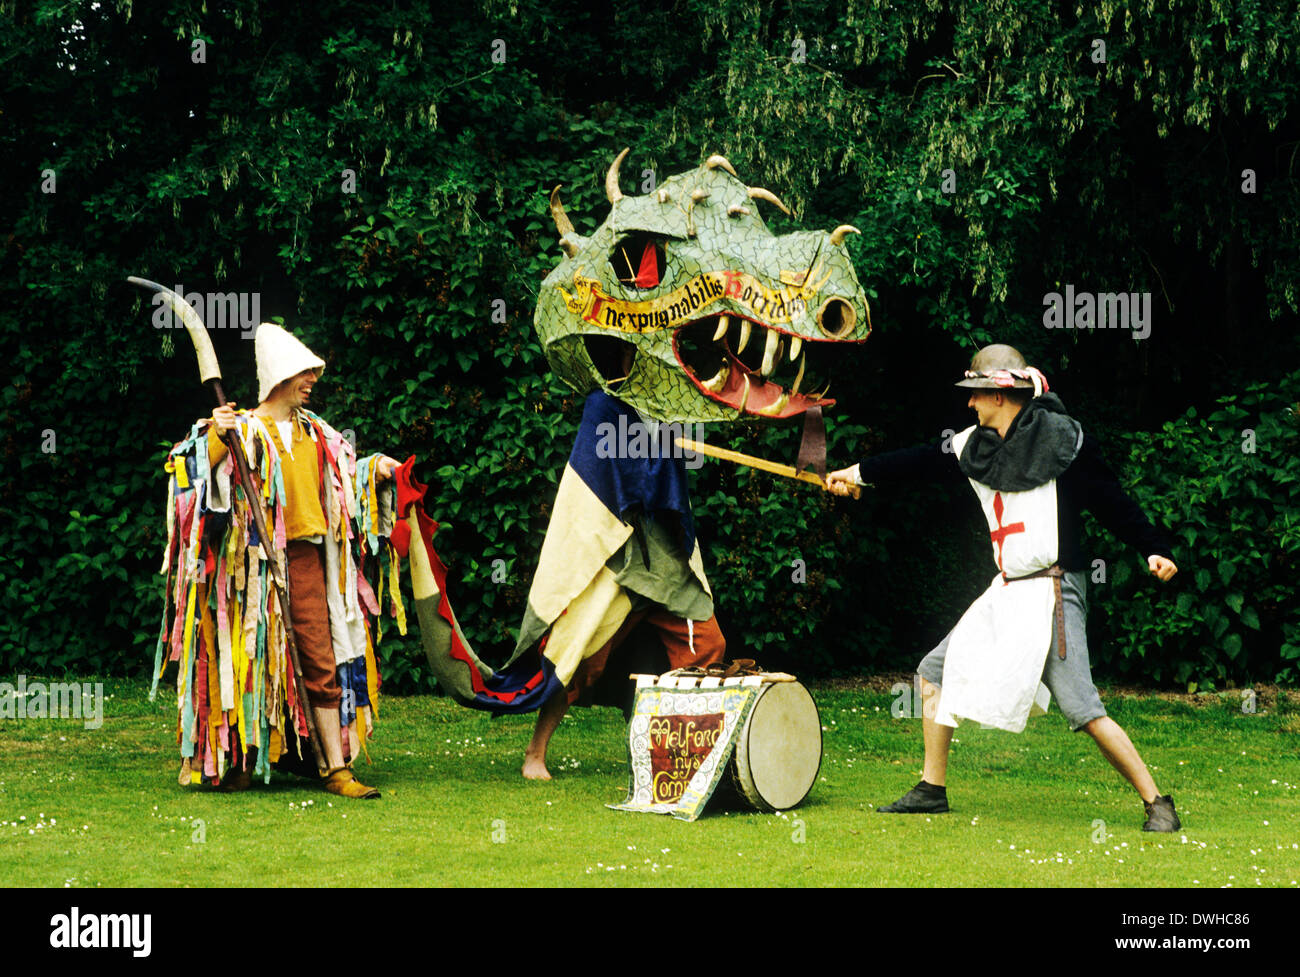 Medieval Miracle Play, St. George and Dragon, plays allegory, theatre, theater, entertainment, historical re-enactment England UK - Stock Image